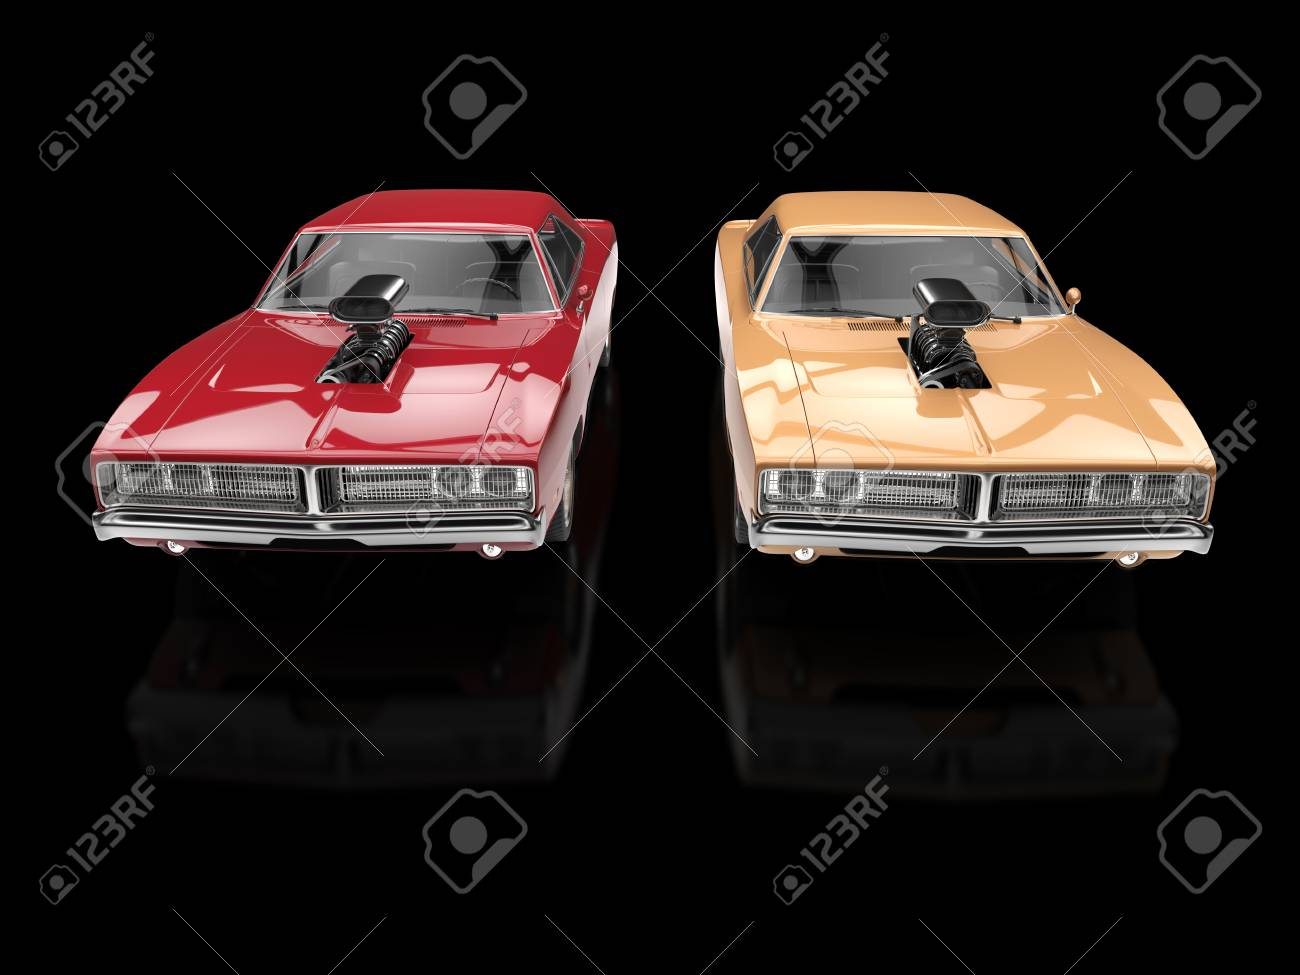 Vintage Muscle Cars Isolated On Black Reflective Background Stock